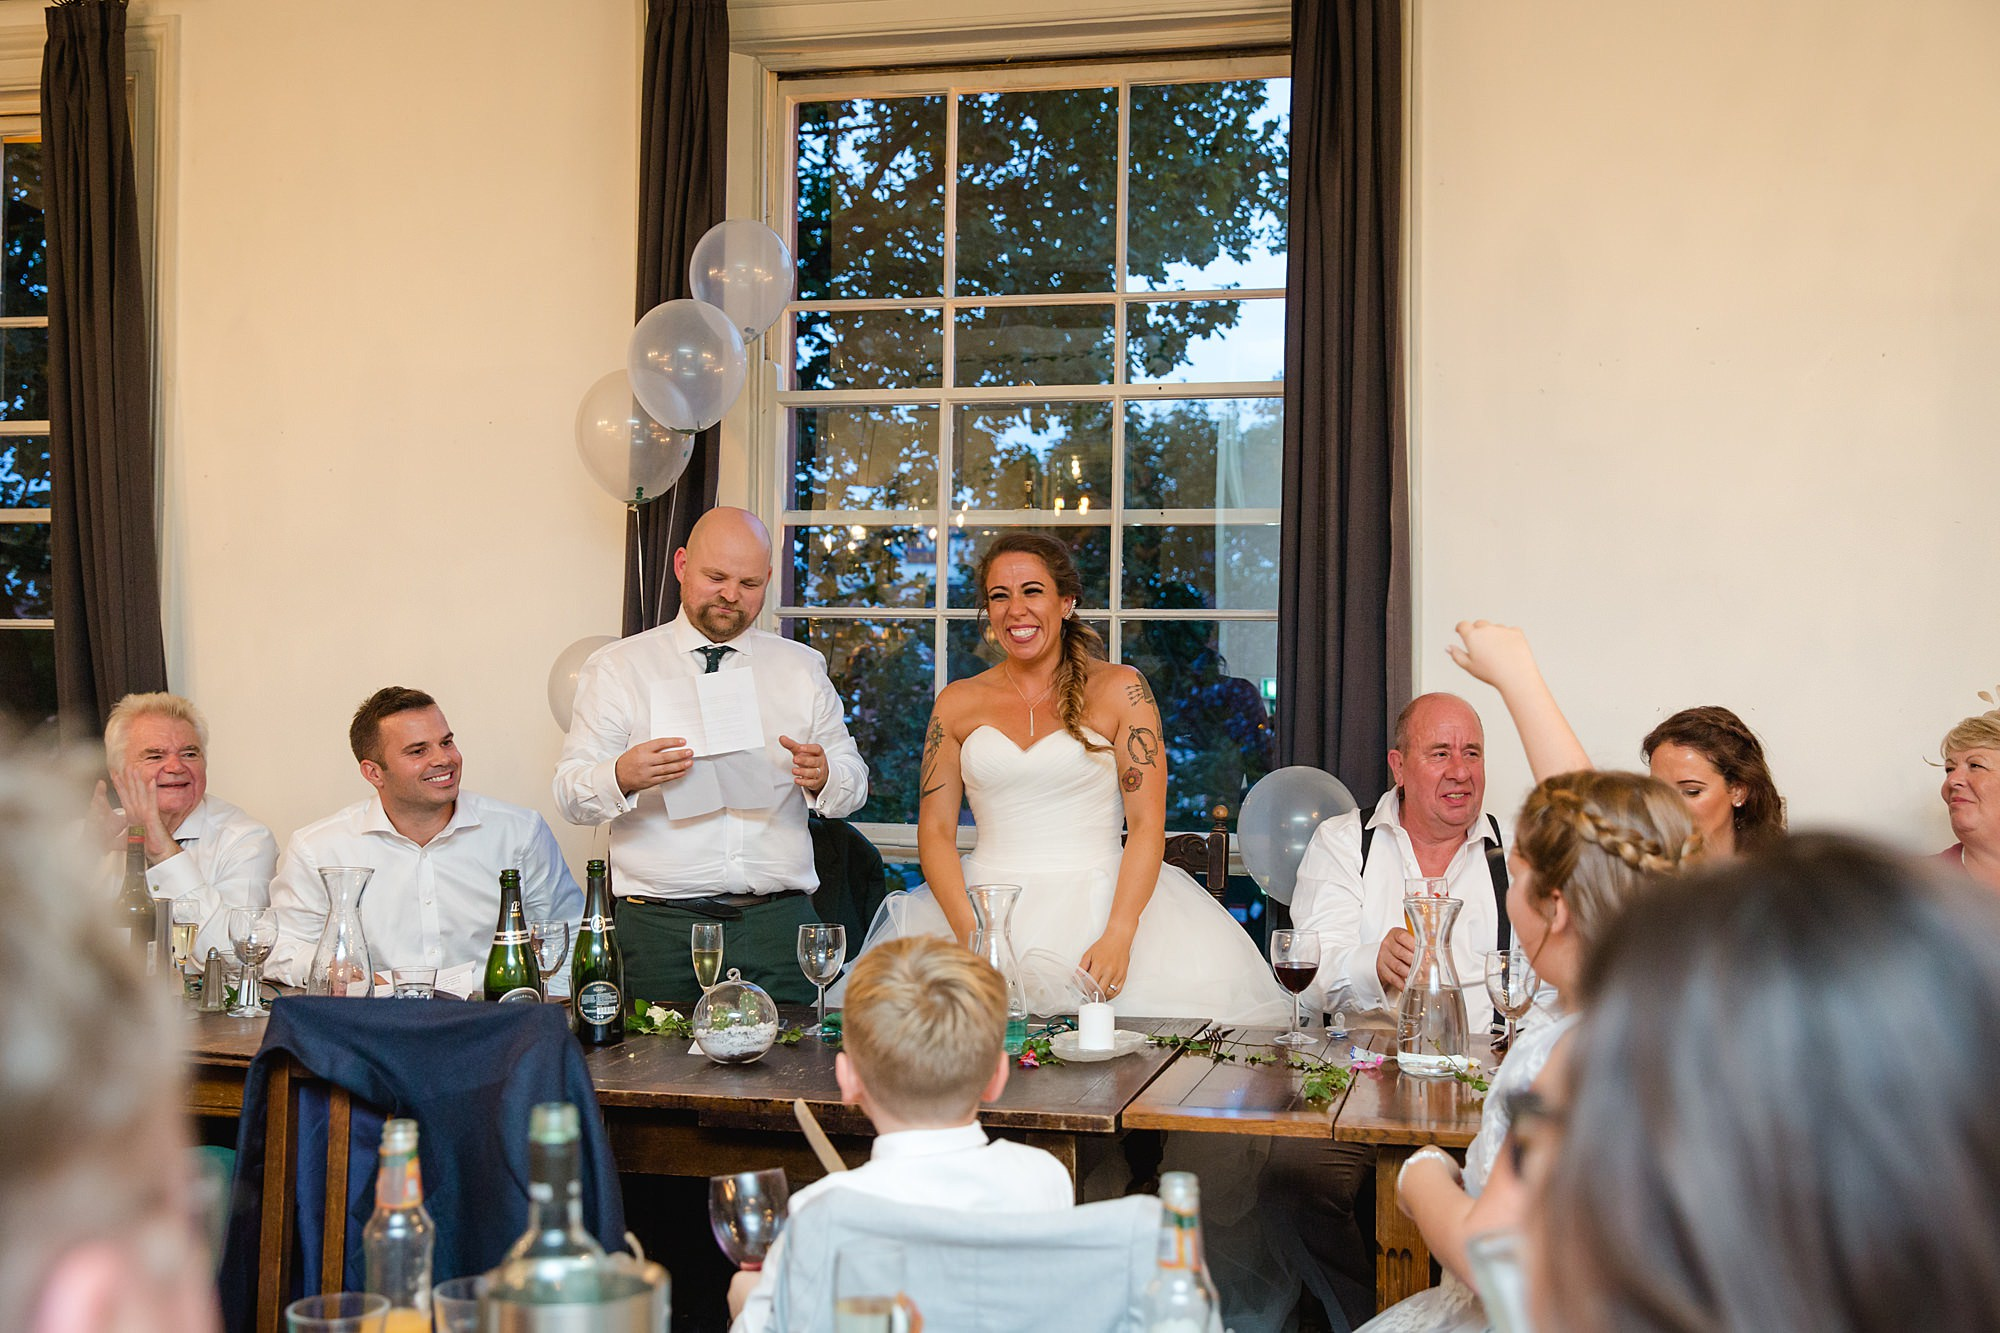 Prince albert camden wedding groom and bride speech